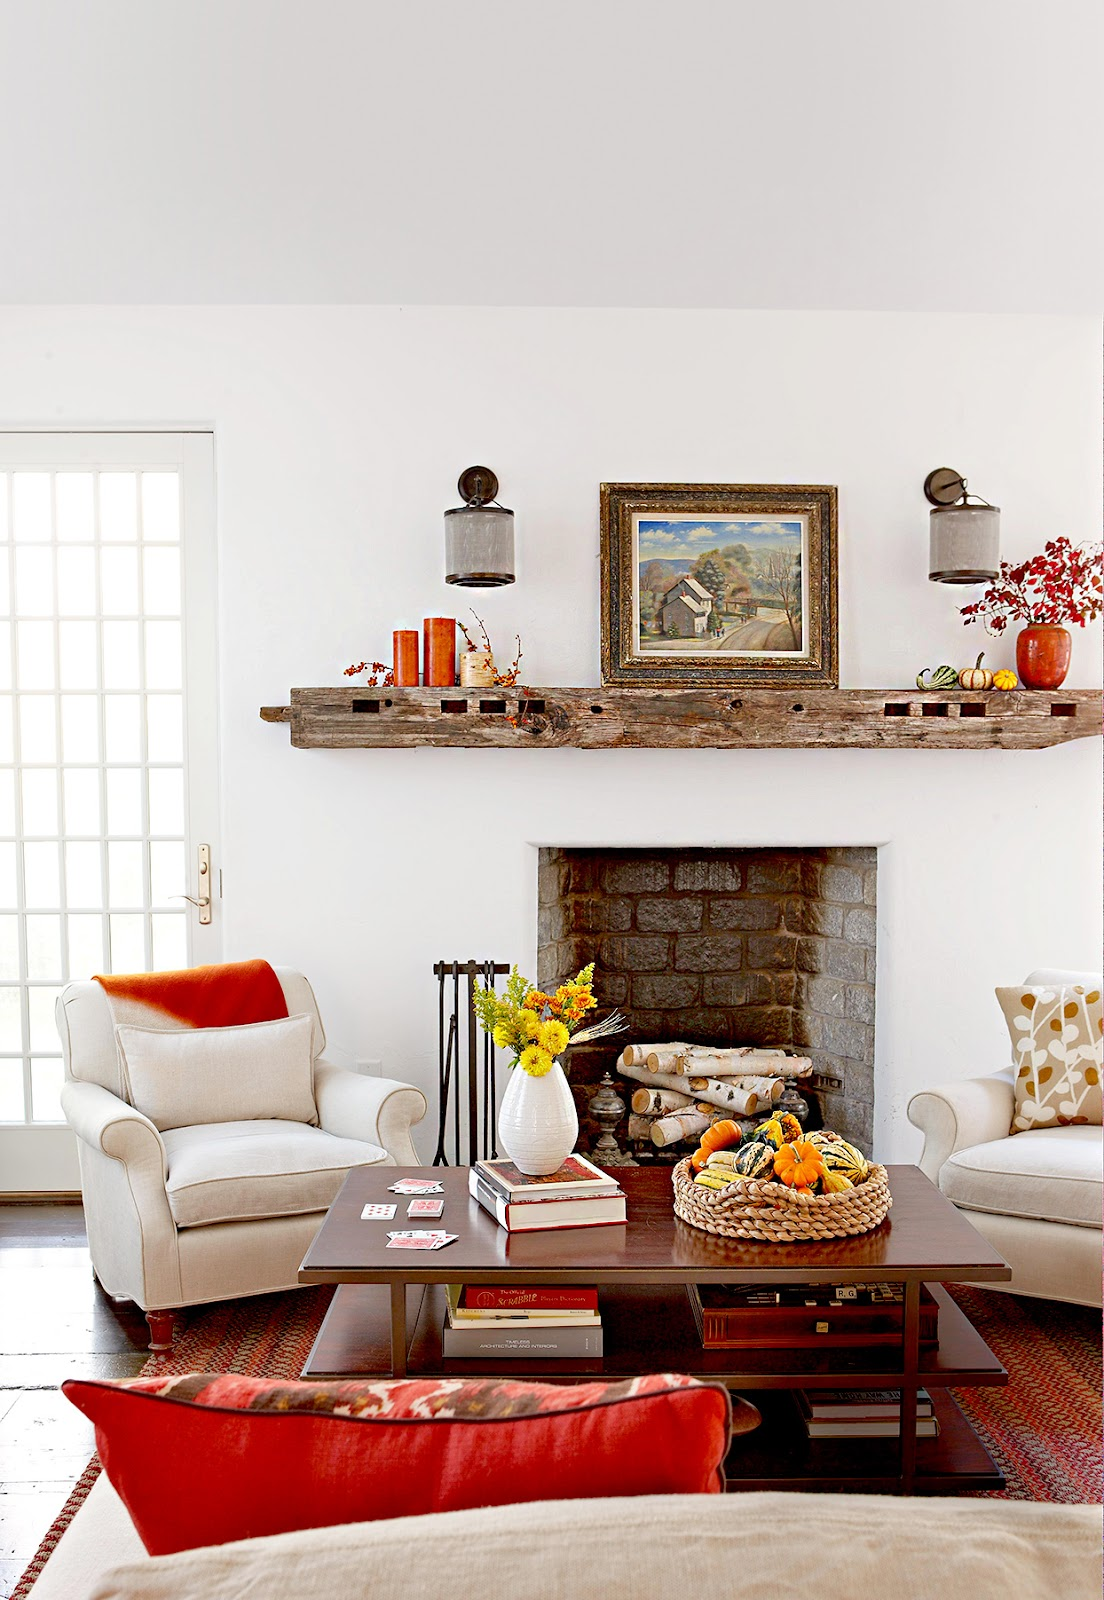 Living room setting in front of fireplace with fall decor.